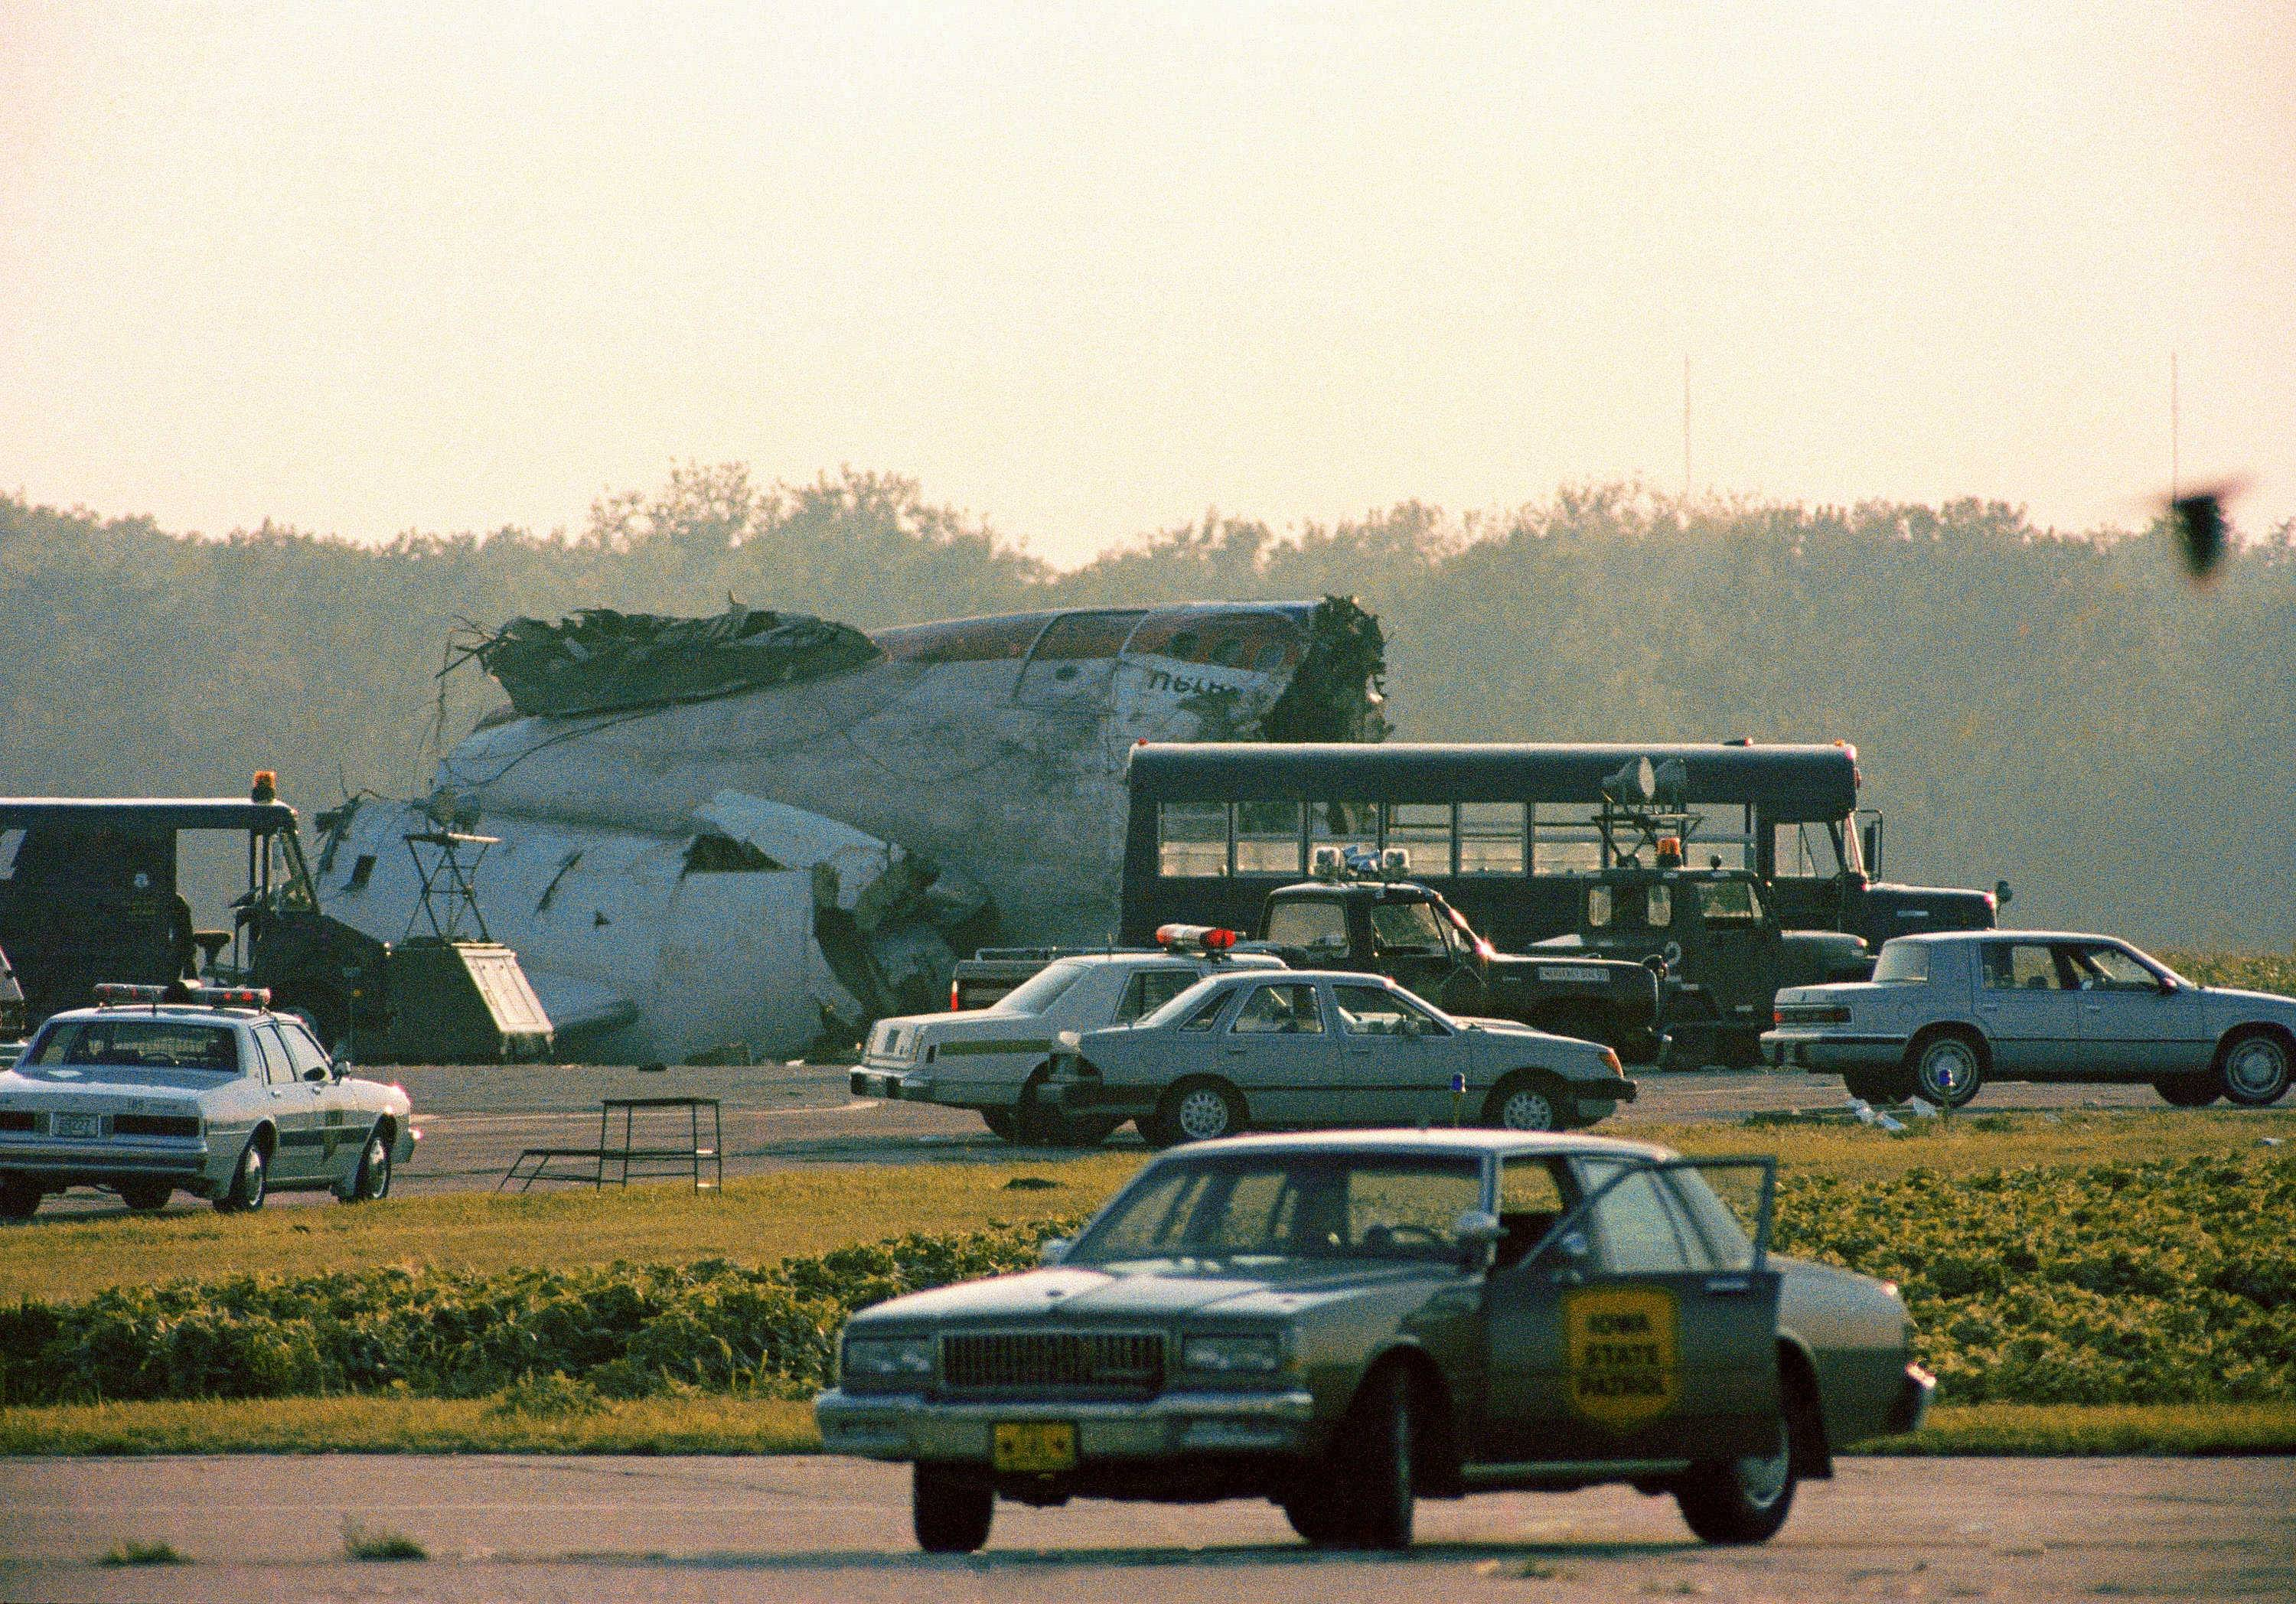 A section of the United Airlines DC-10 stands among emergency vehicles after crashing while trying to make an emergency landing in Sioux City, Iowa, July 19, 1989. The FAA acknowledges its rules fall short of what's safest for young fliers in such a catastrophe.